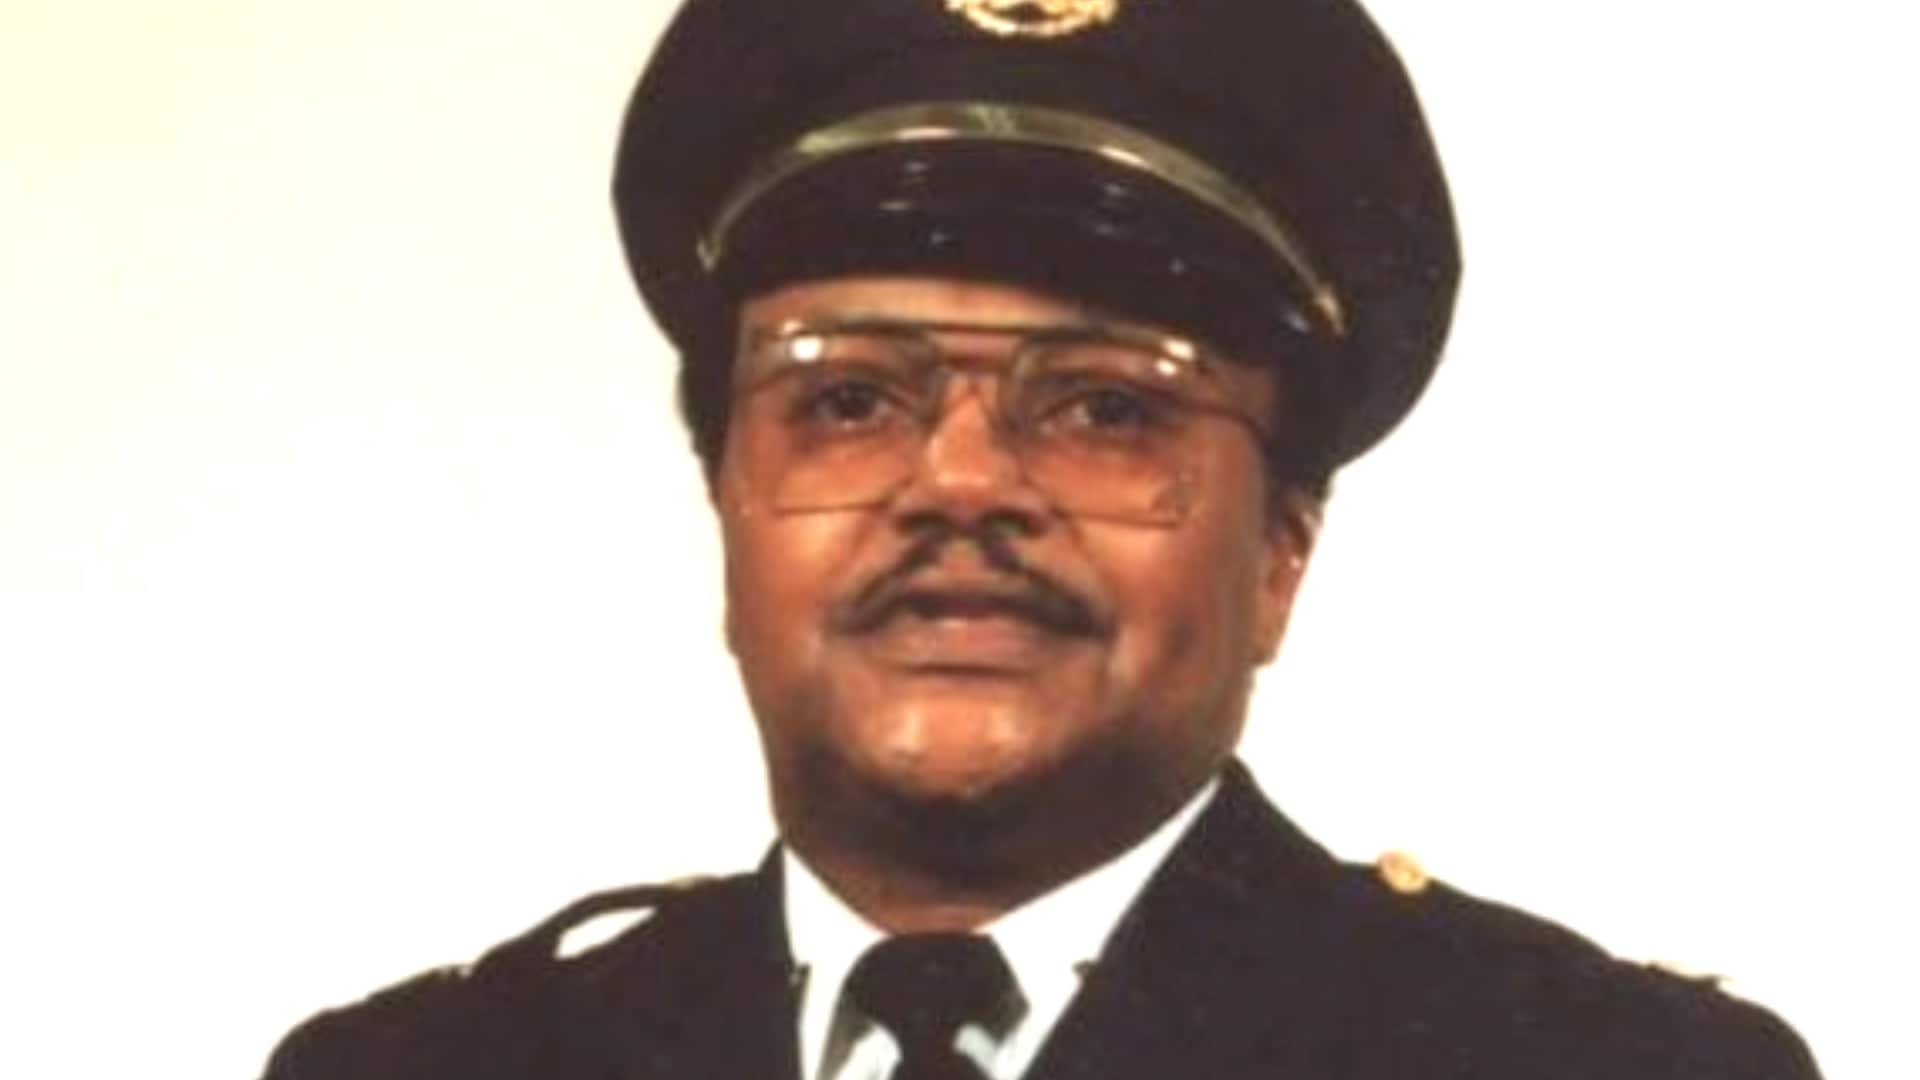 Retired St. Louis police captain shot dead amid unrest outside ...